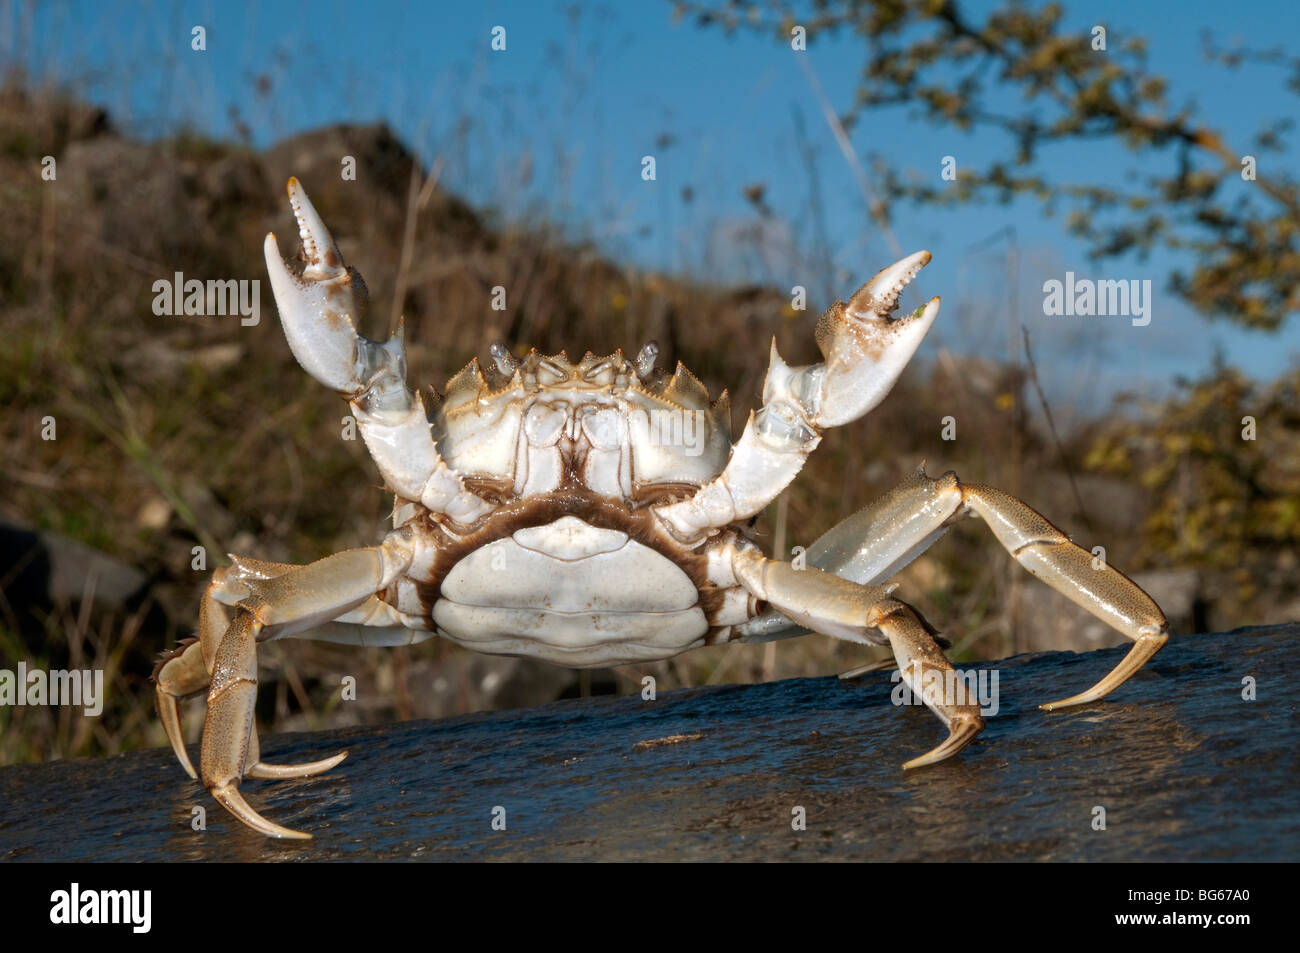 Chinese Mitten Crab (Eriocheir sinensis), female in defensive posture. - Stock Image